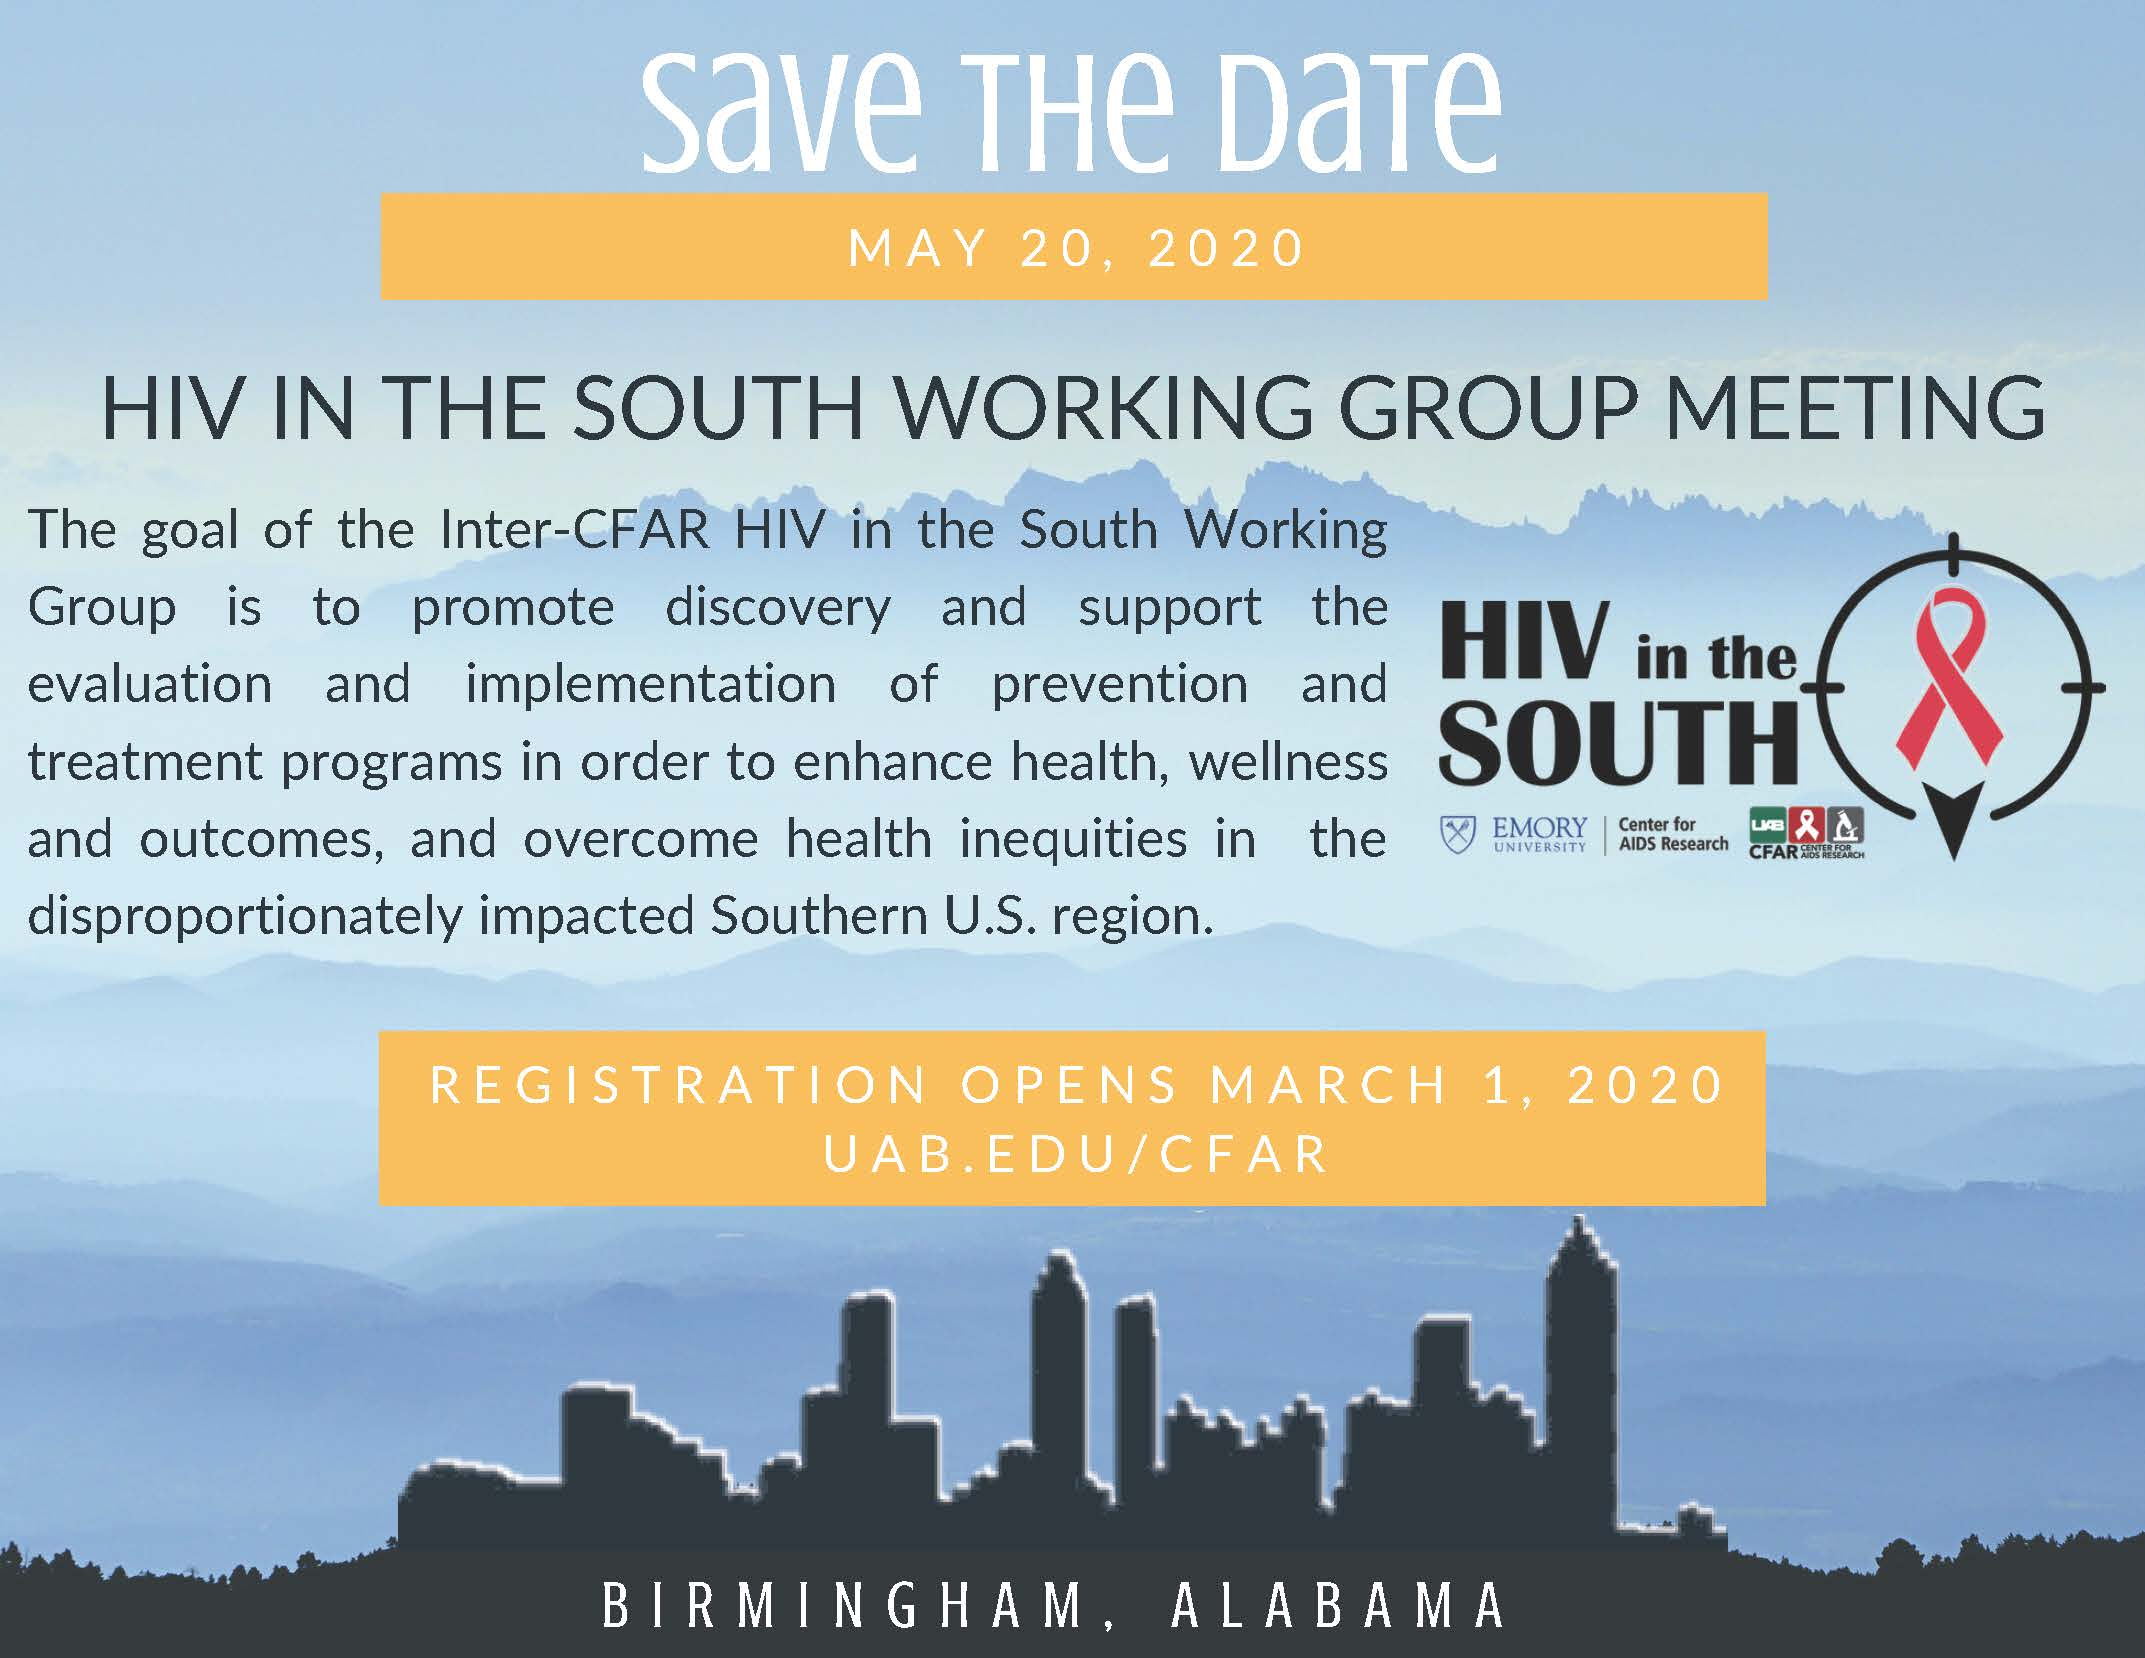 HIV in the South Save the Date